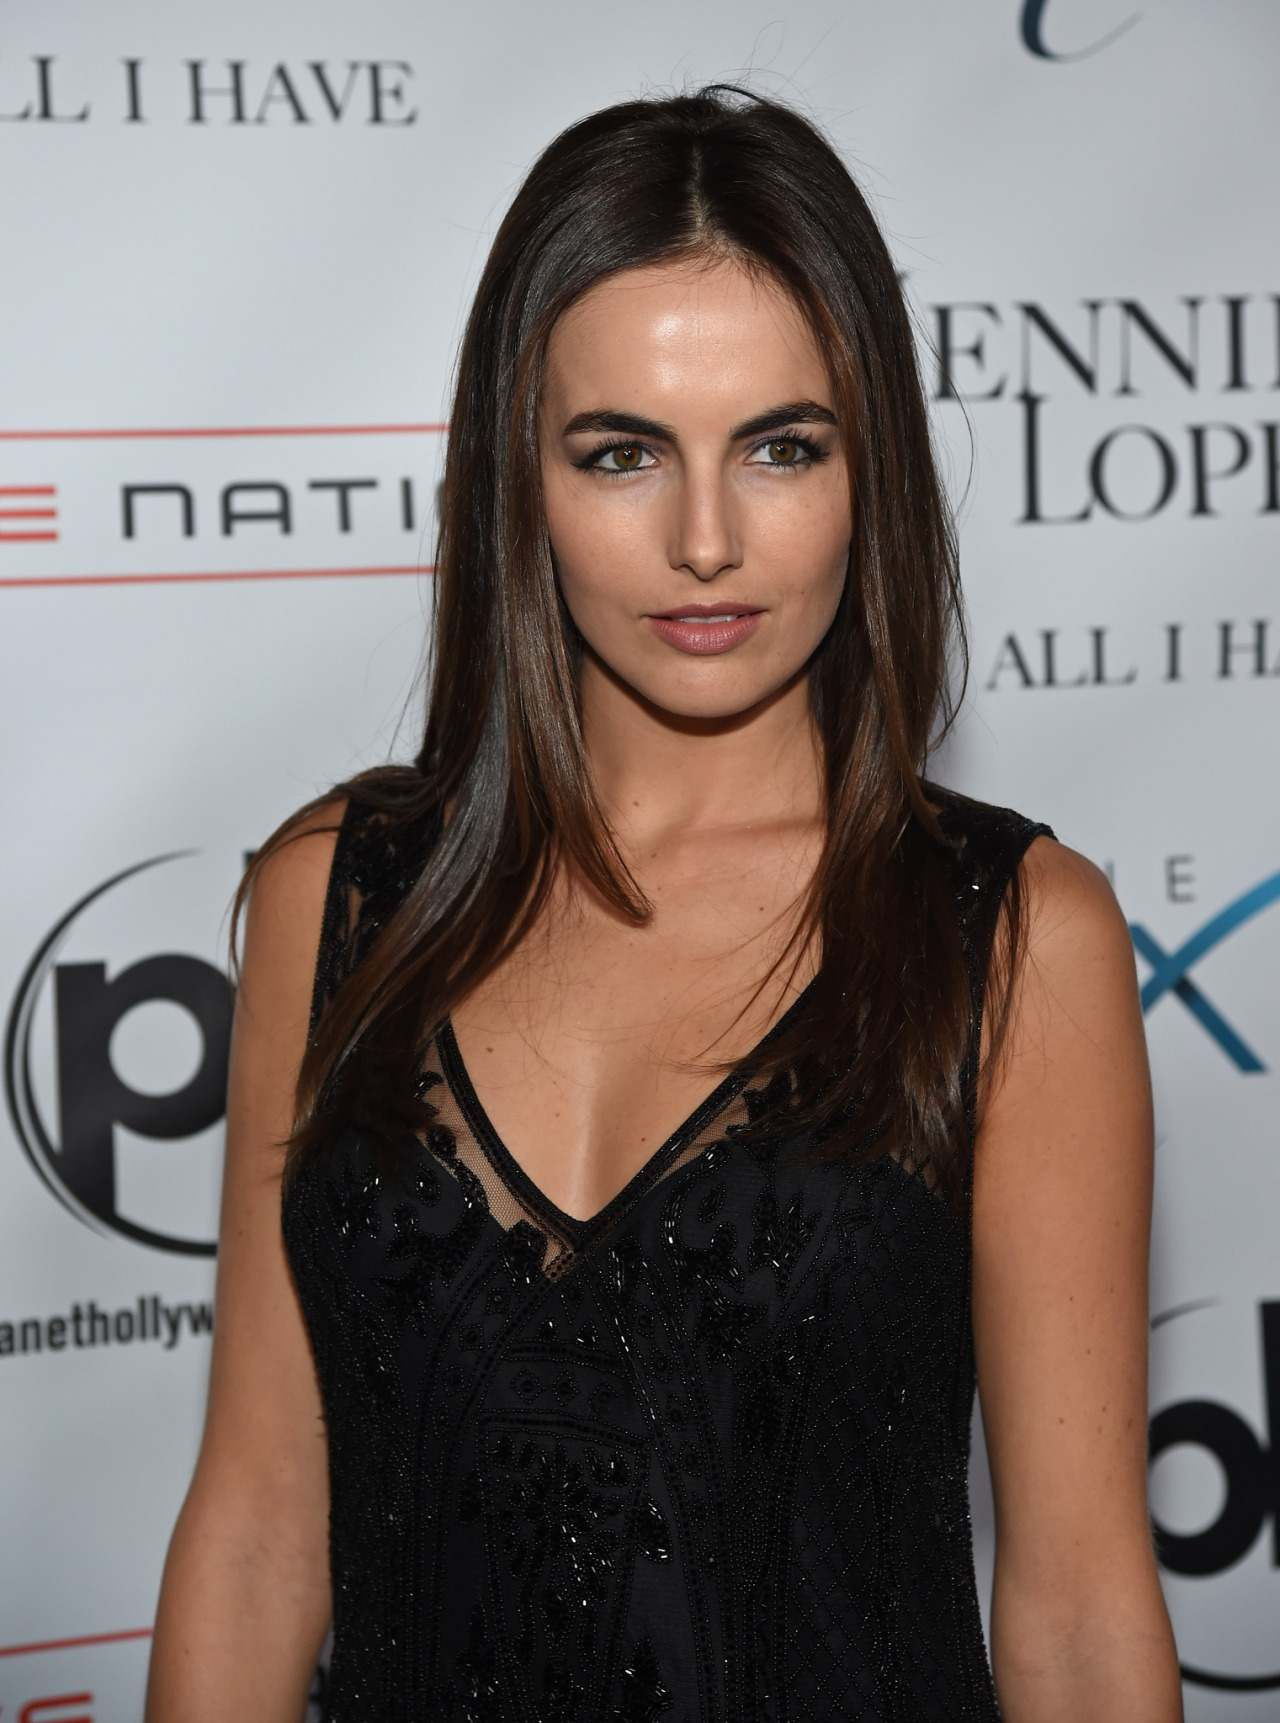 Camilla Belle at Jennifer Lopezs All I Have Residency Opening in LV-1